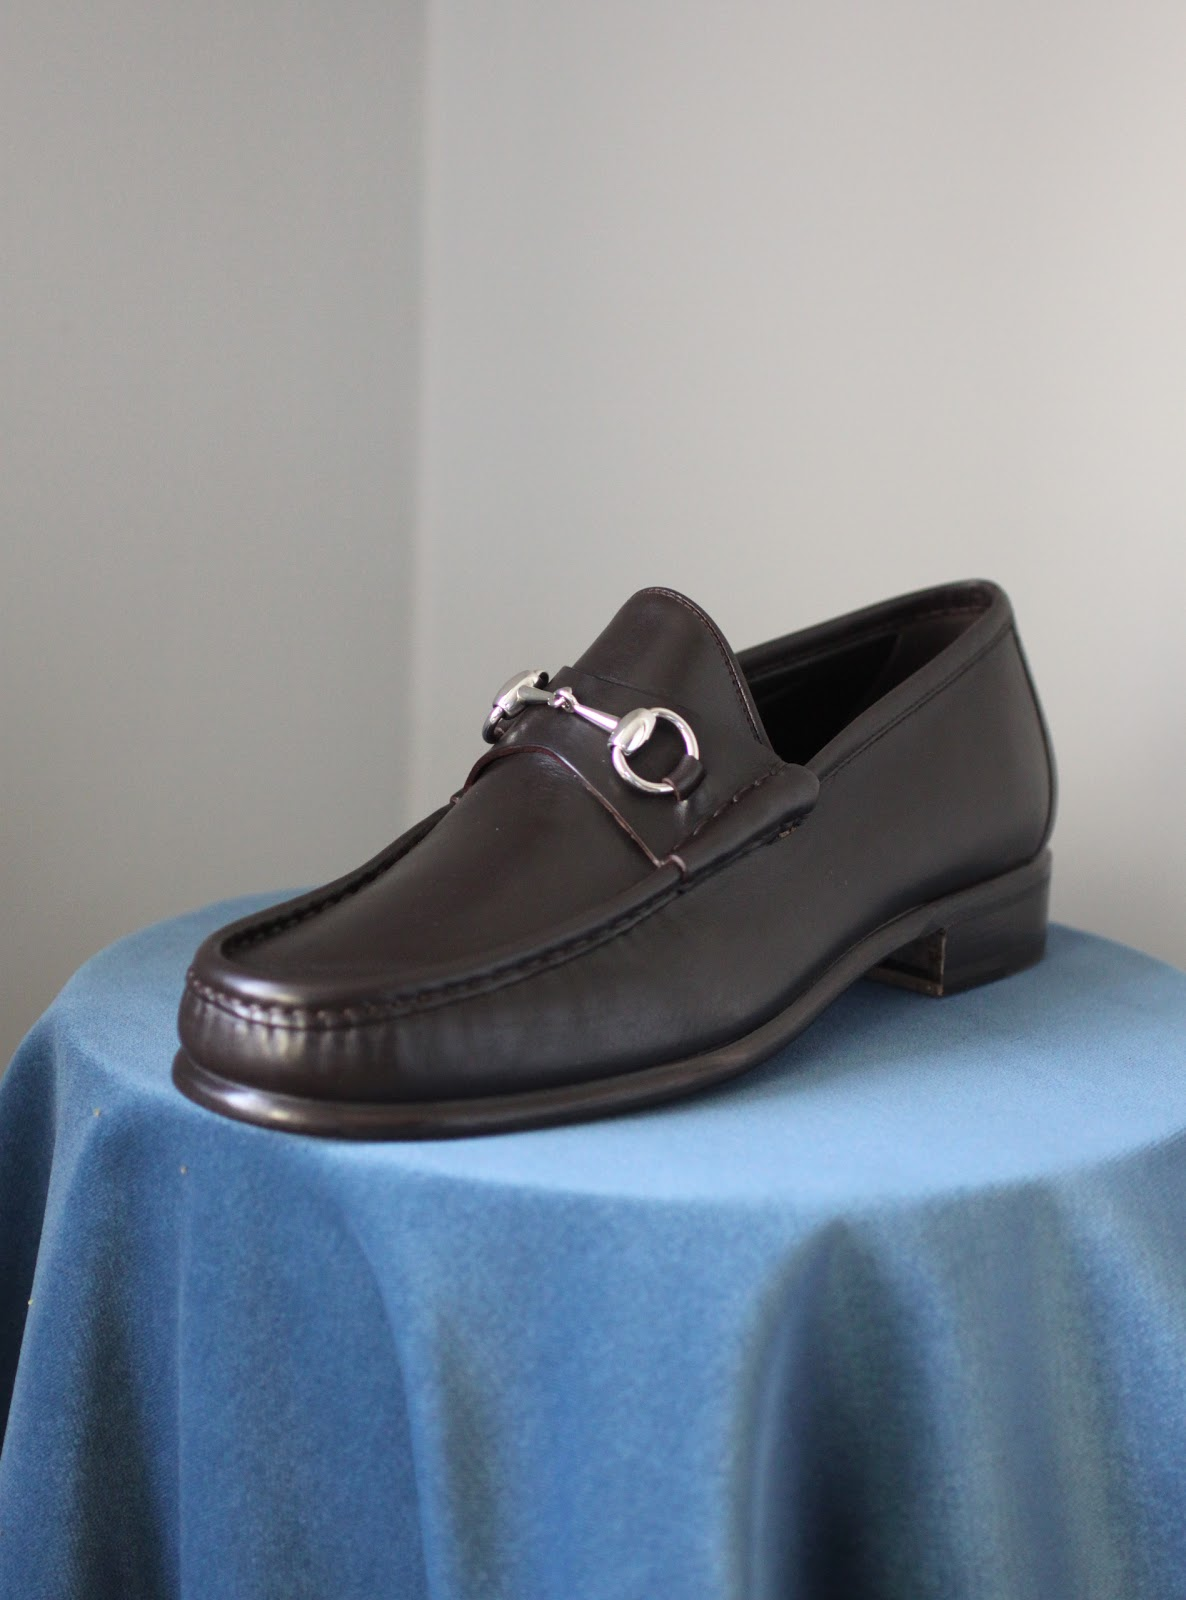 5d8921b03bb Reggie Darling  My Lifelong Love Affair with Gucci Loafers